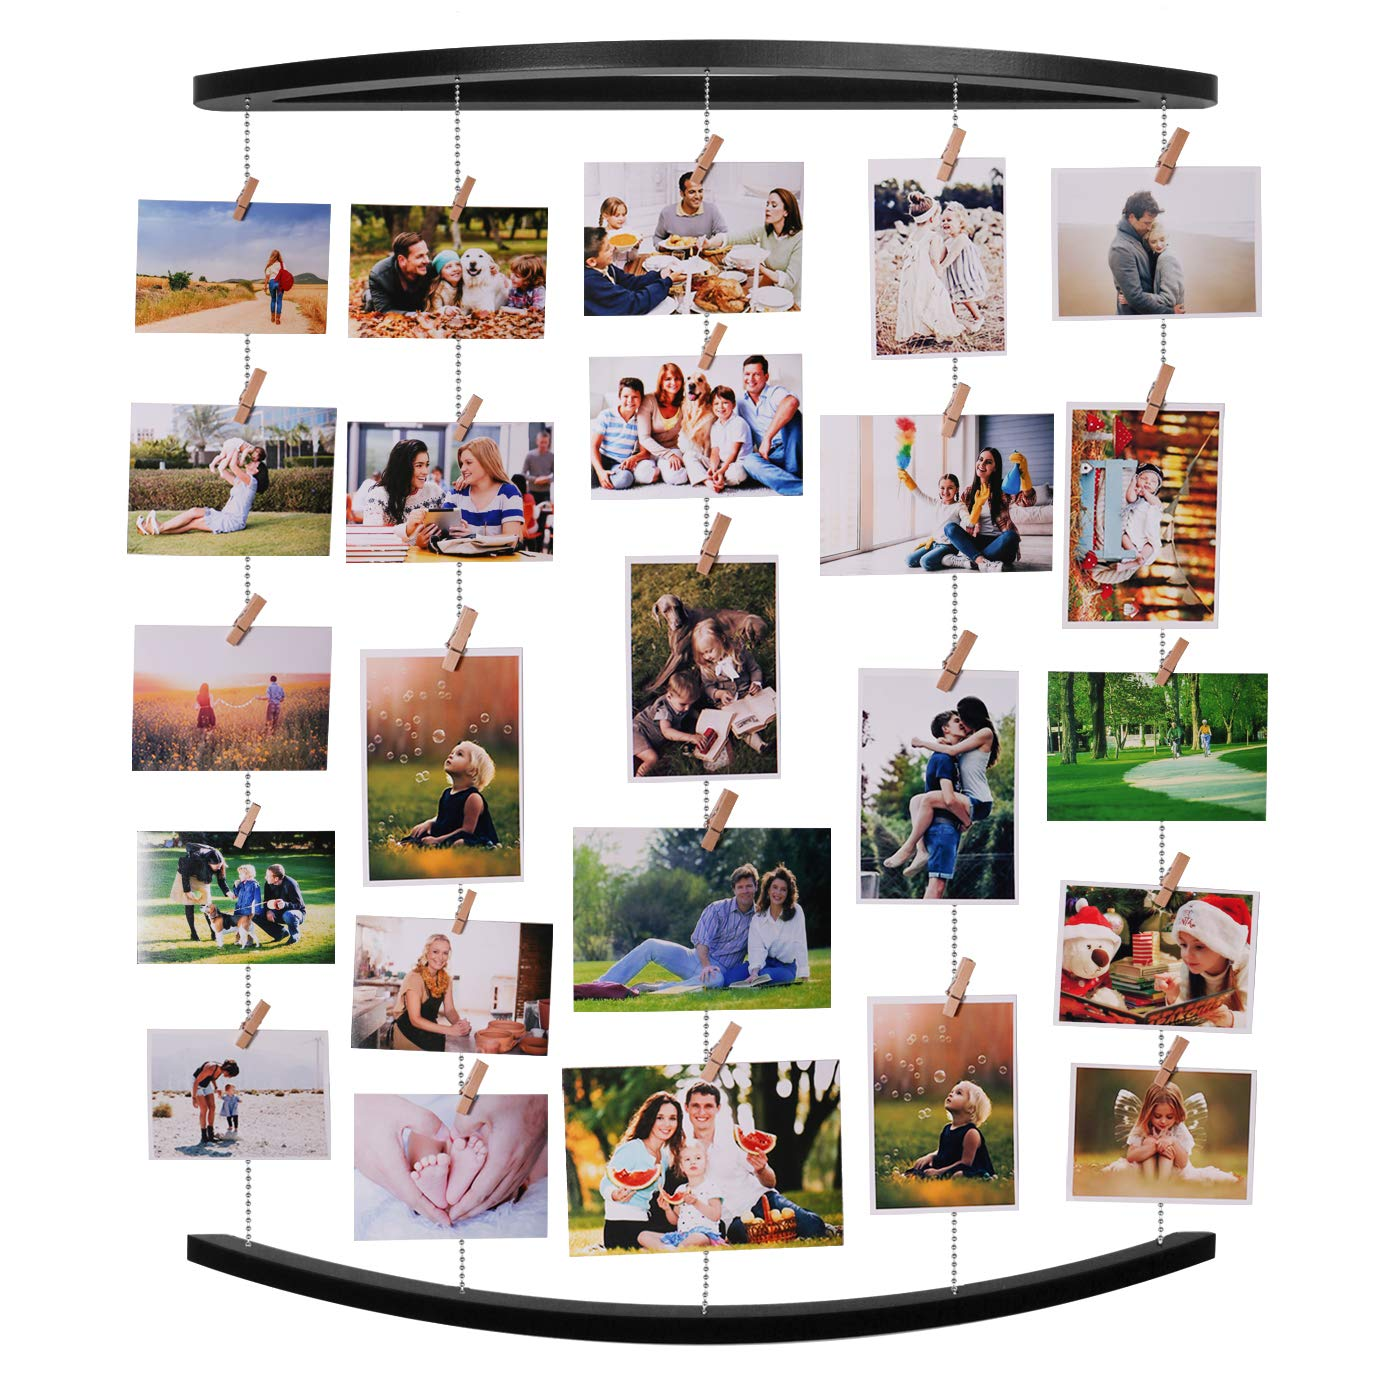 EASTERNSTAR Photo Collage Frames Hanging Display Natural Wood Multiple Picture Organizer 26.2 x 22.7 inch with 30 Clips for Family Office (Black) by EASTERNSTAR